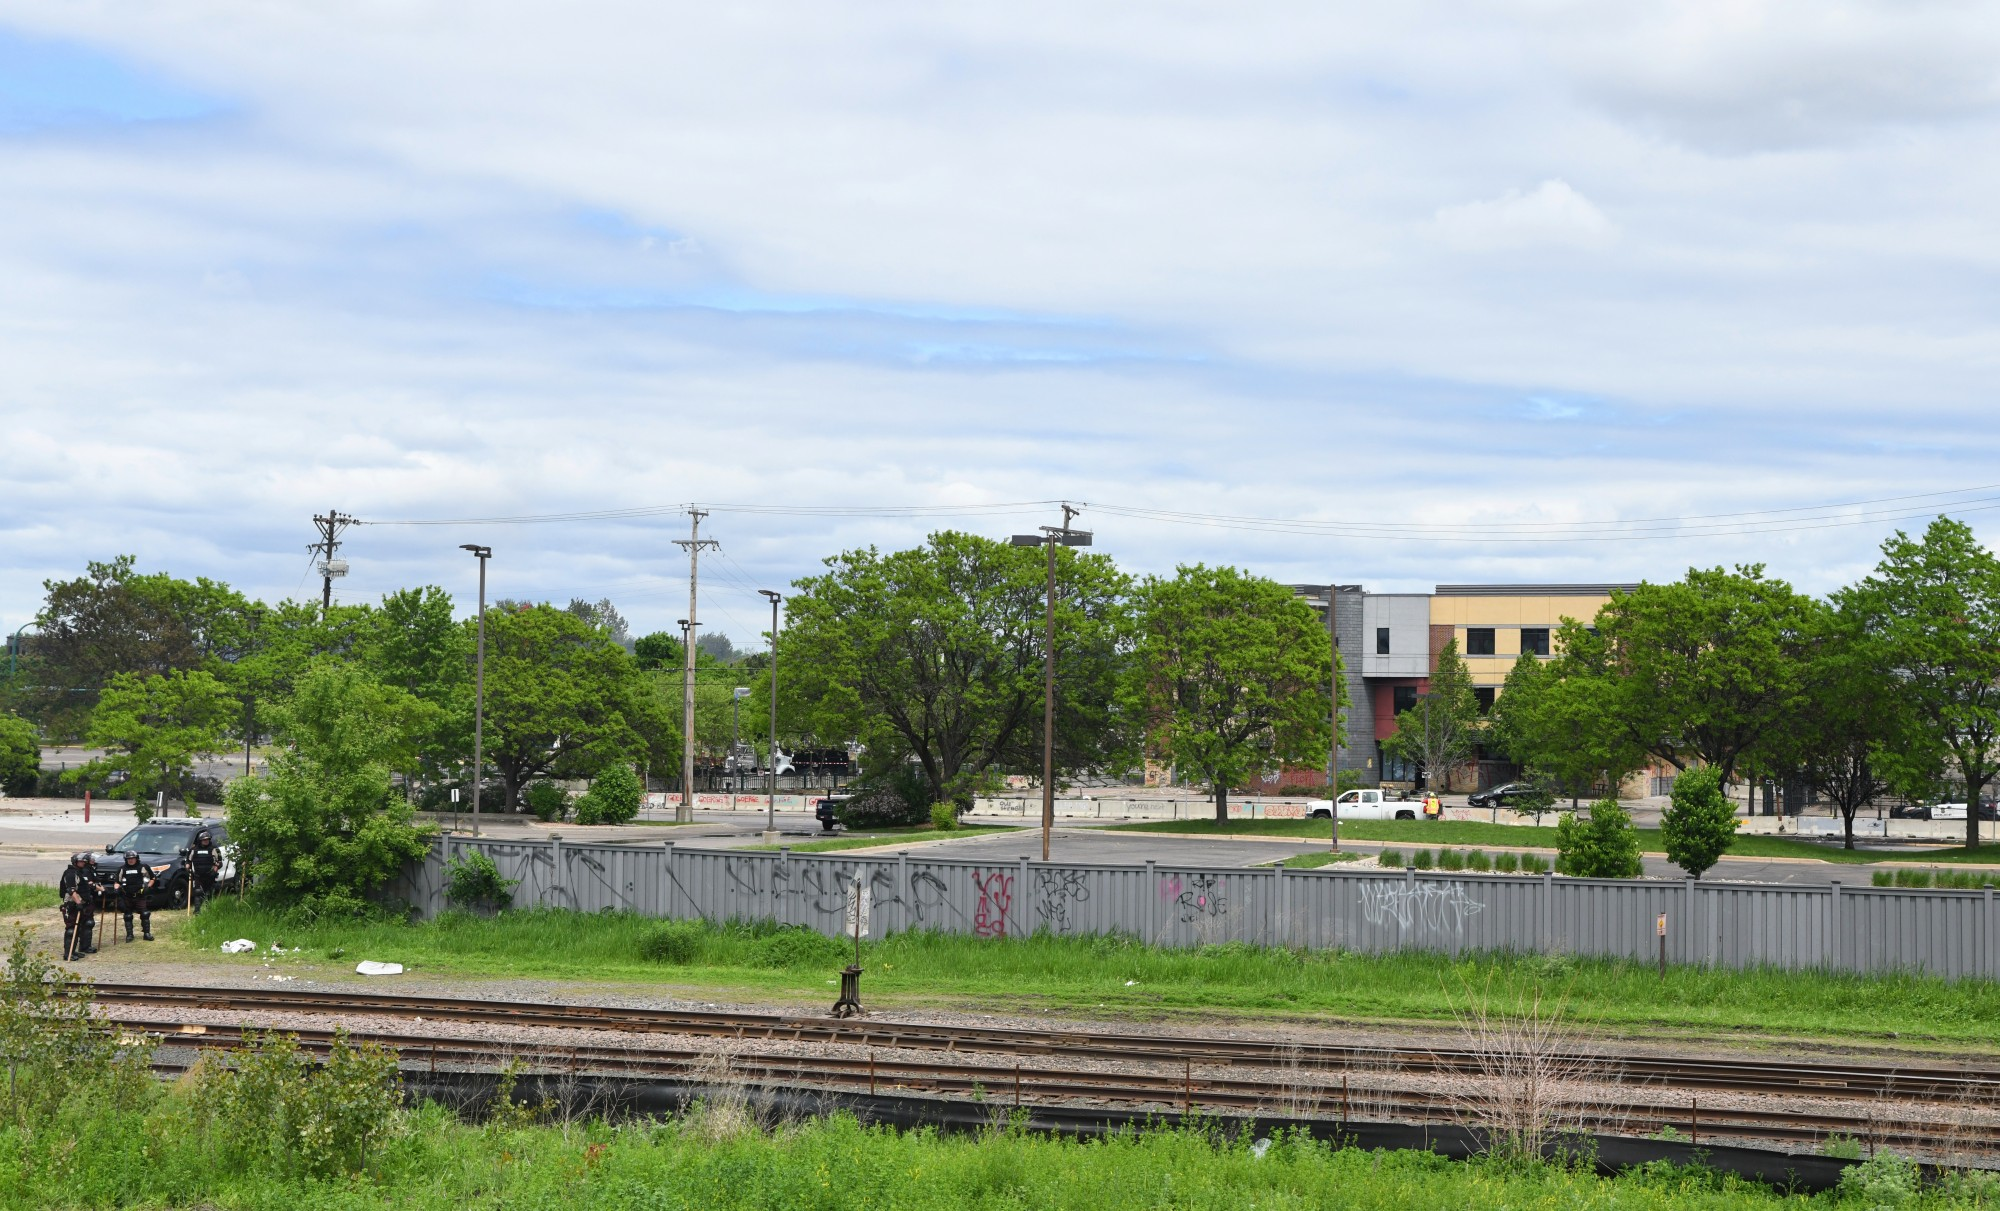 The MPD 3rd Precinct as seen from Hiawatha Ave in Minneapolis on Friday, May 29.